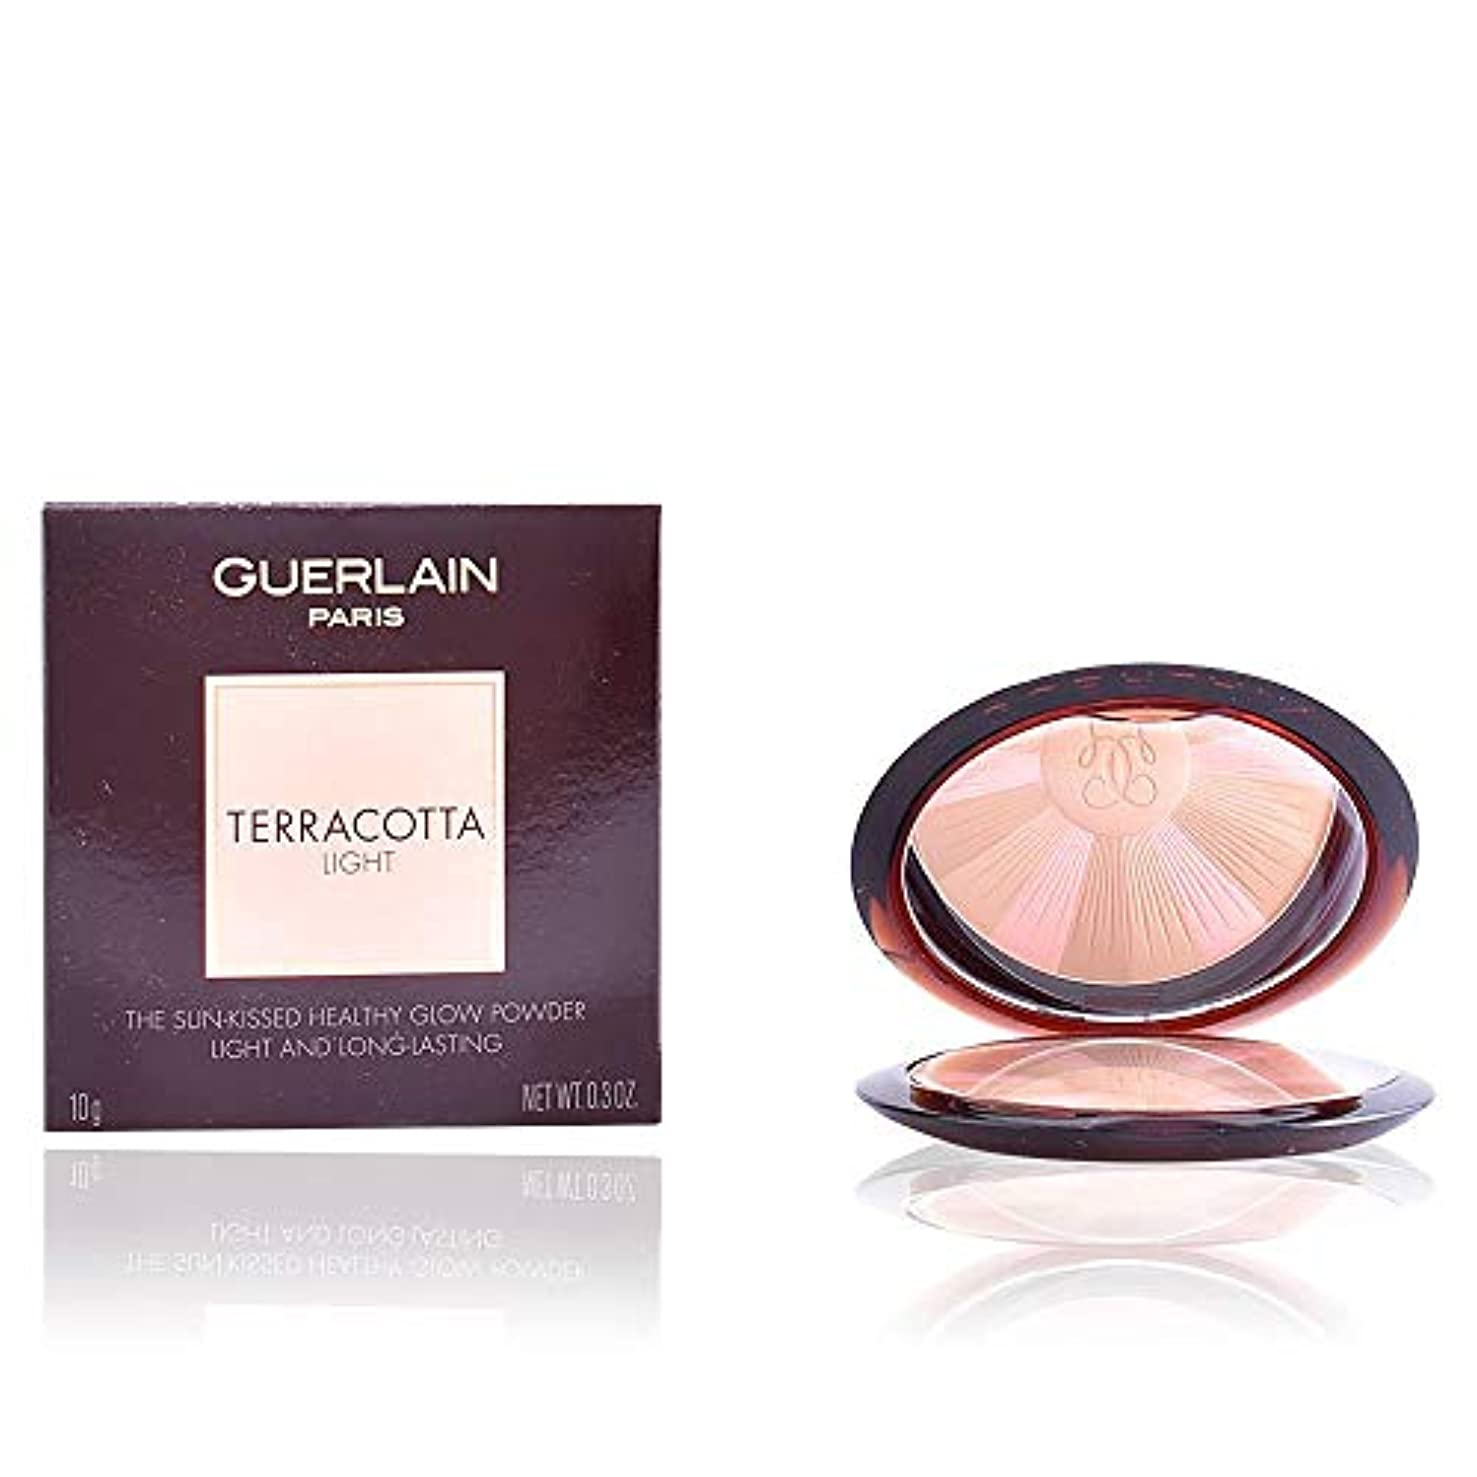 なくなるブース犯すゲラン Terracotta Light The Sun Kissed Healthy Glow Powder - # 01 Light Warm 10g/0.3oz並行輸入品